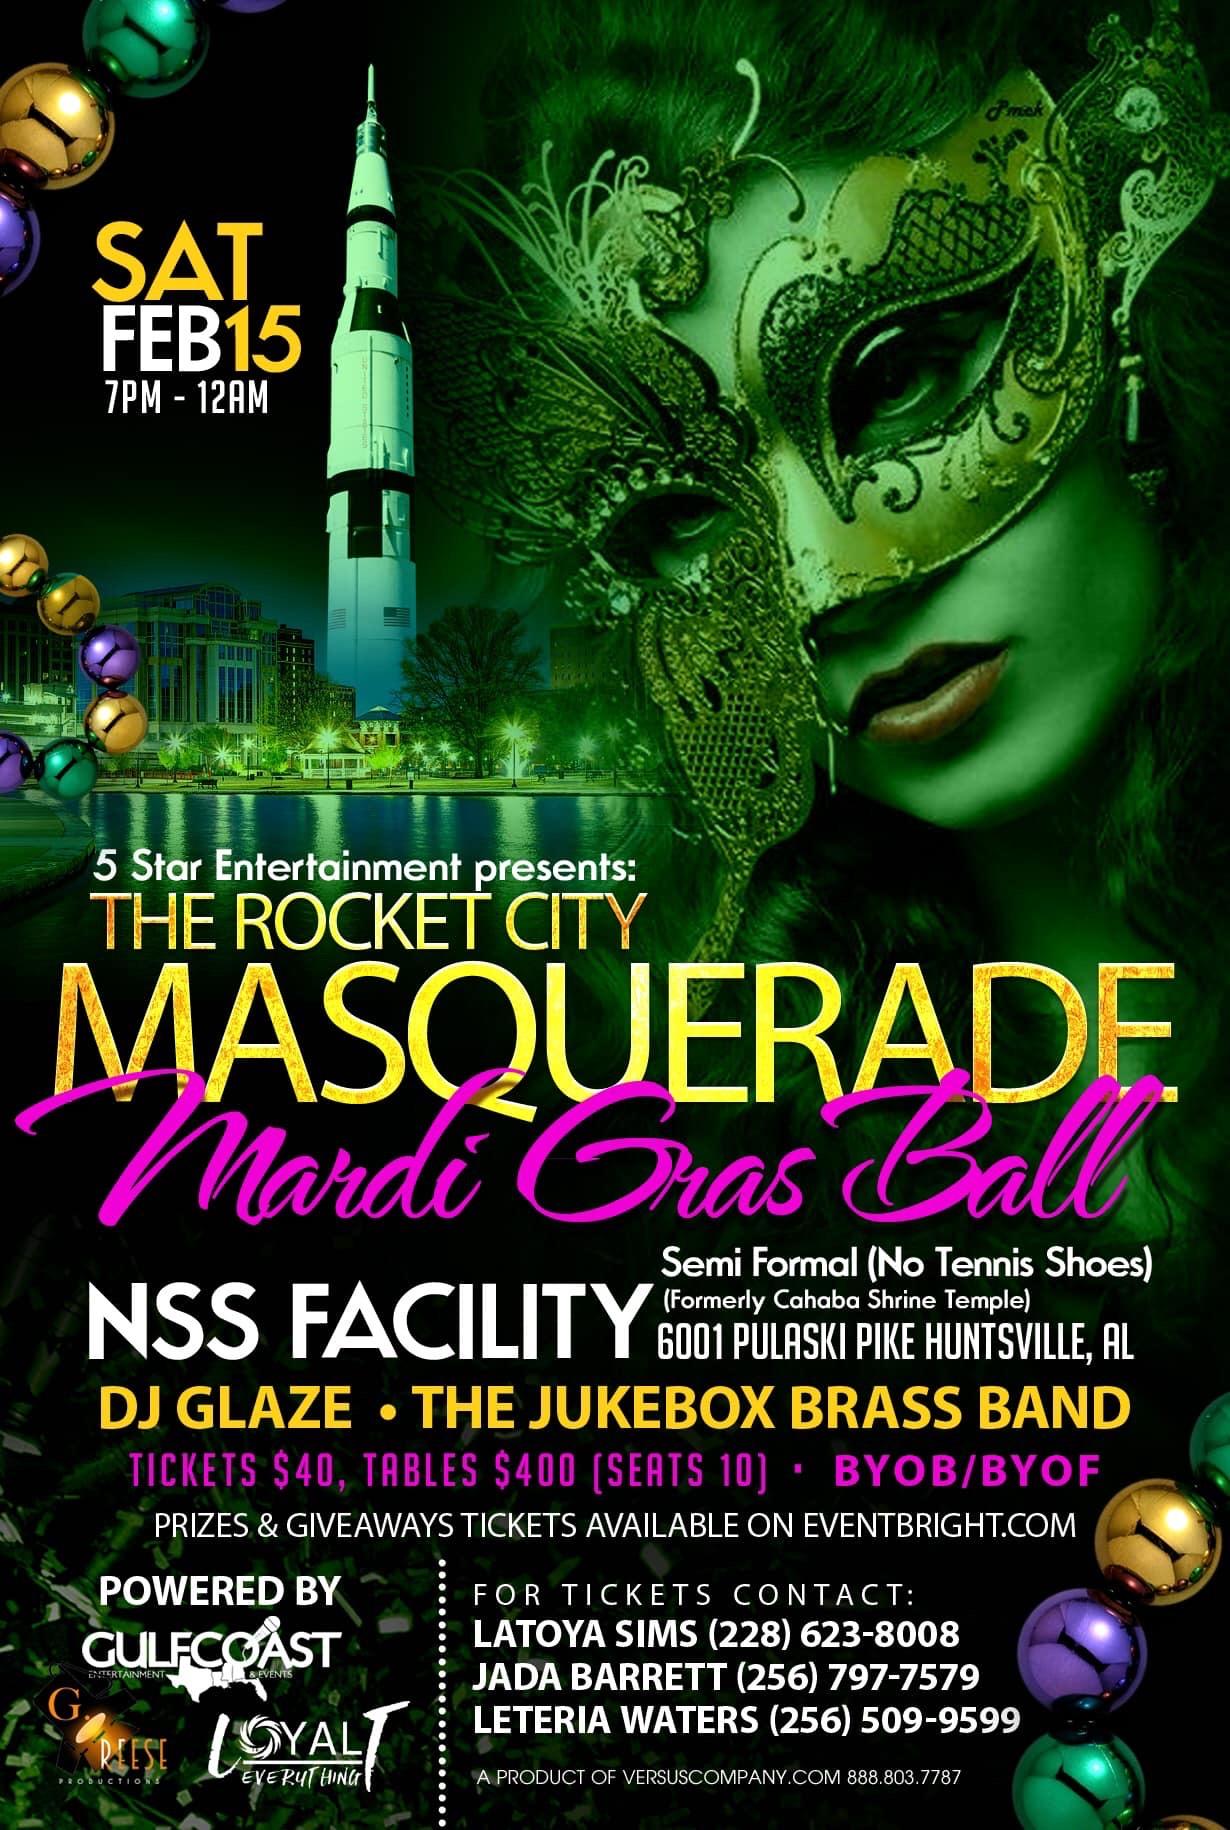 The Rocket City Masquerade Ball